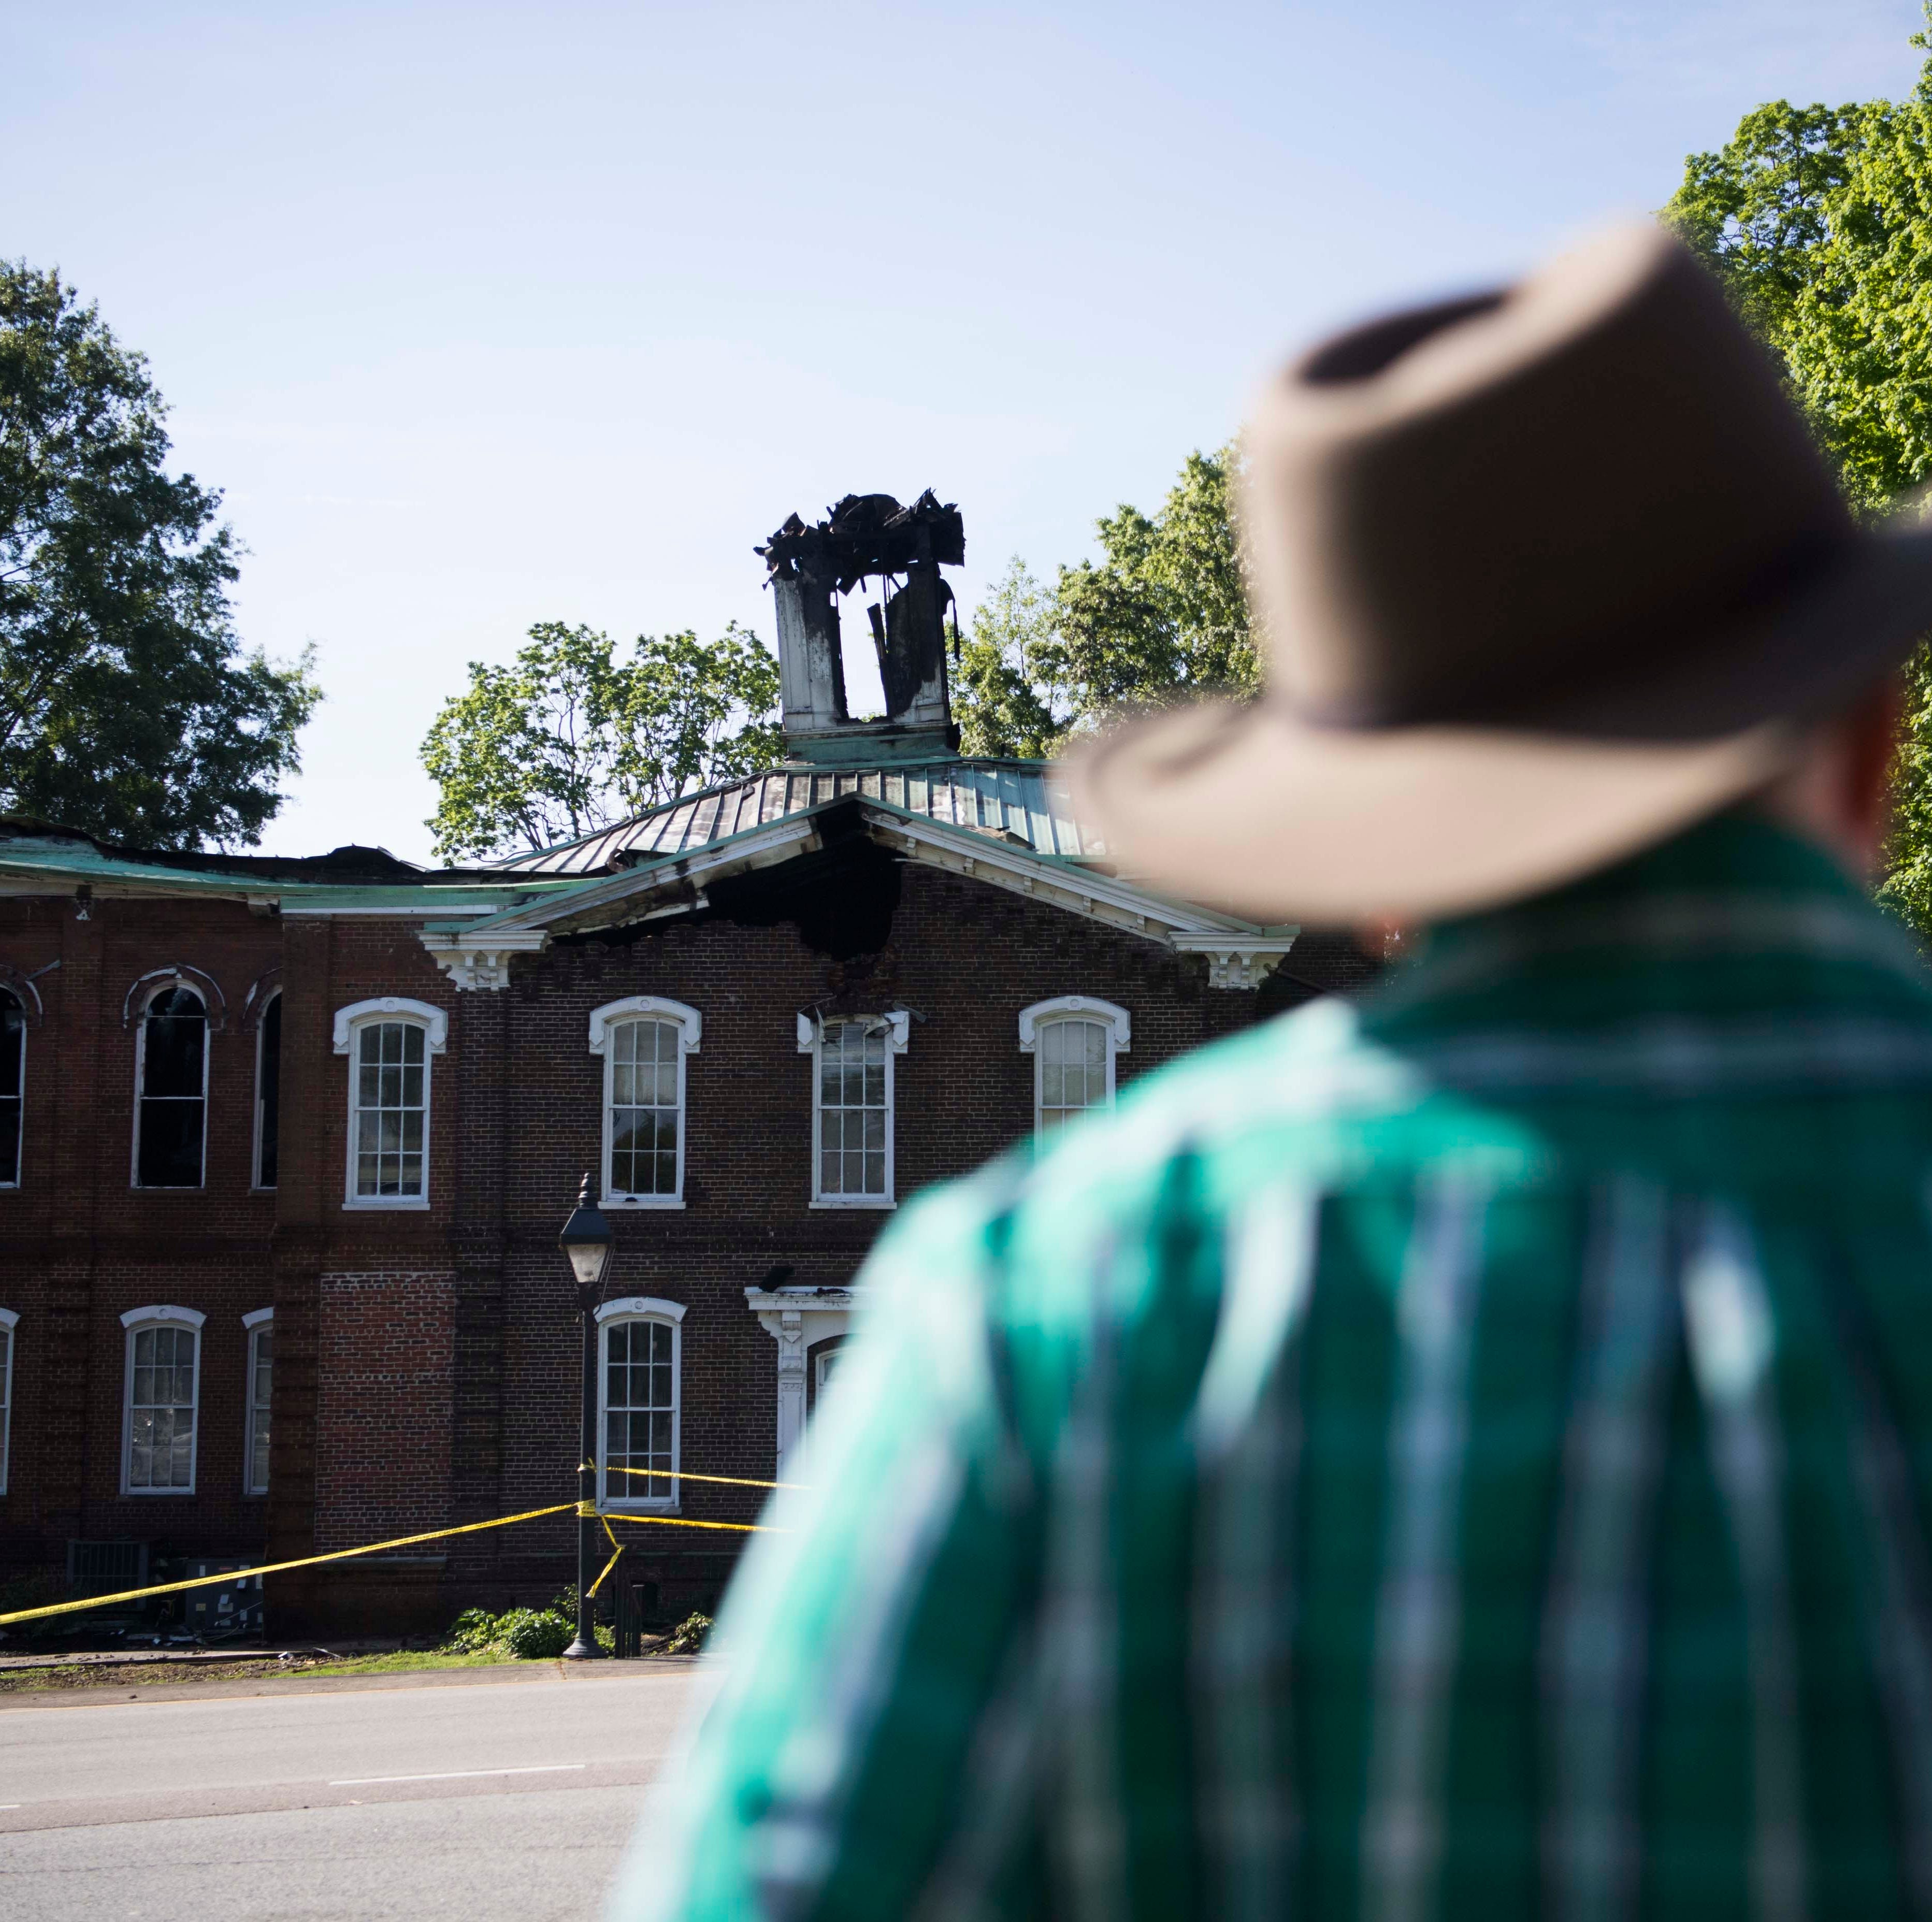 'A leap of faith': Officials enter burned Loudon County Courthouse to retrieve evidence